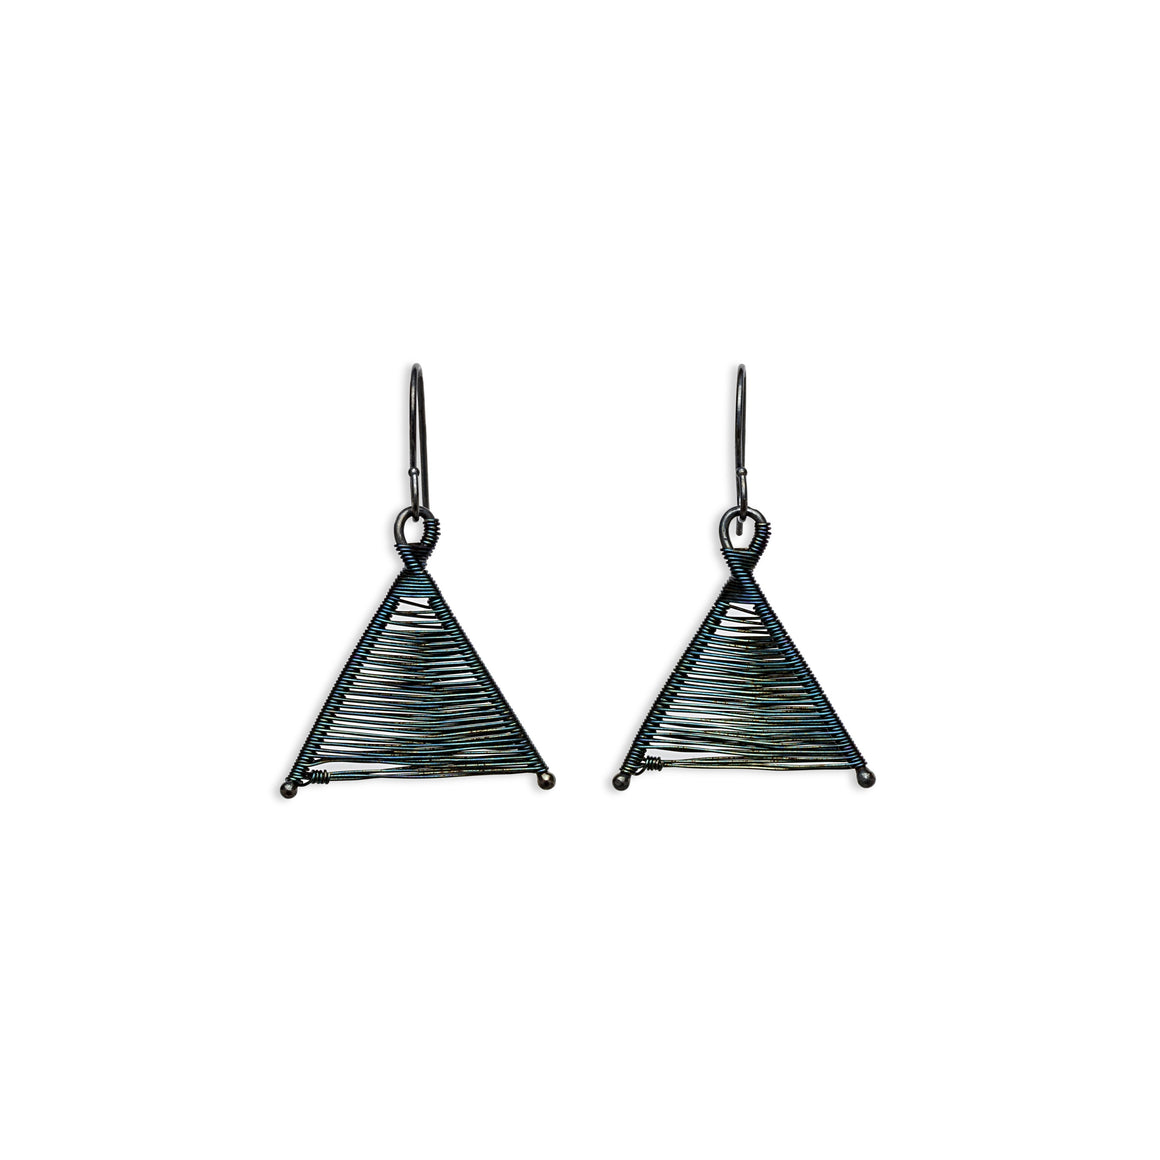 Original Sin Jewelry's Handmade Woven Wishbone Oxidized Silver Dangle Triangle Earrings